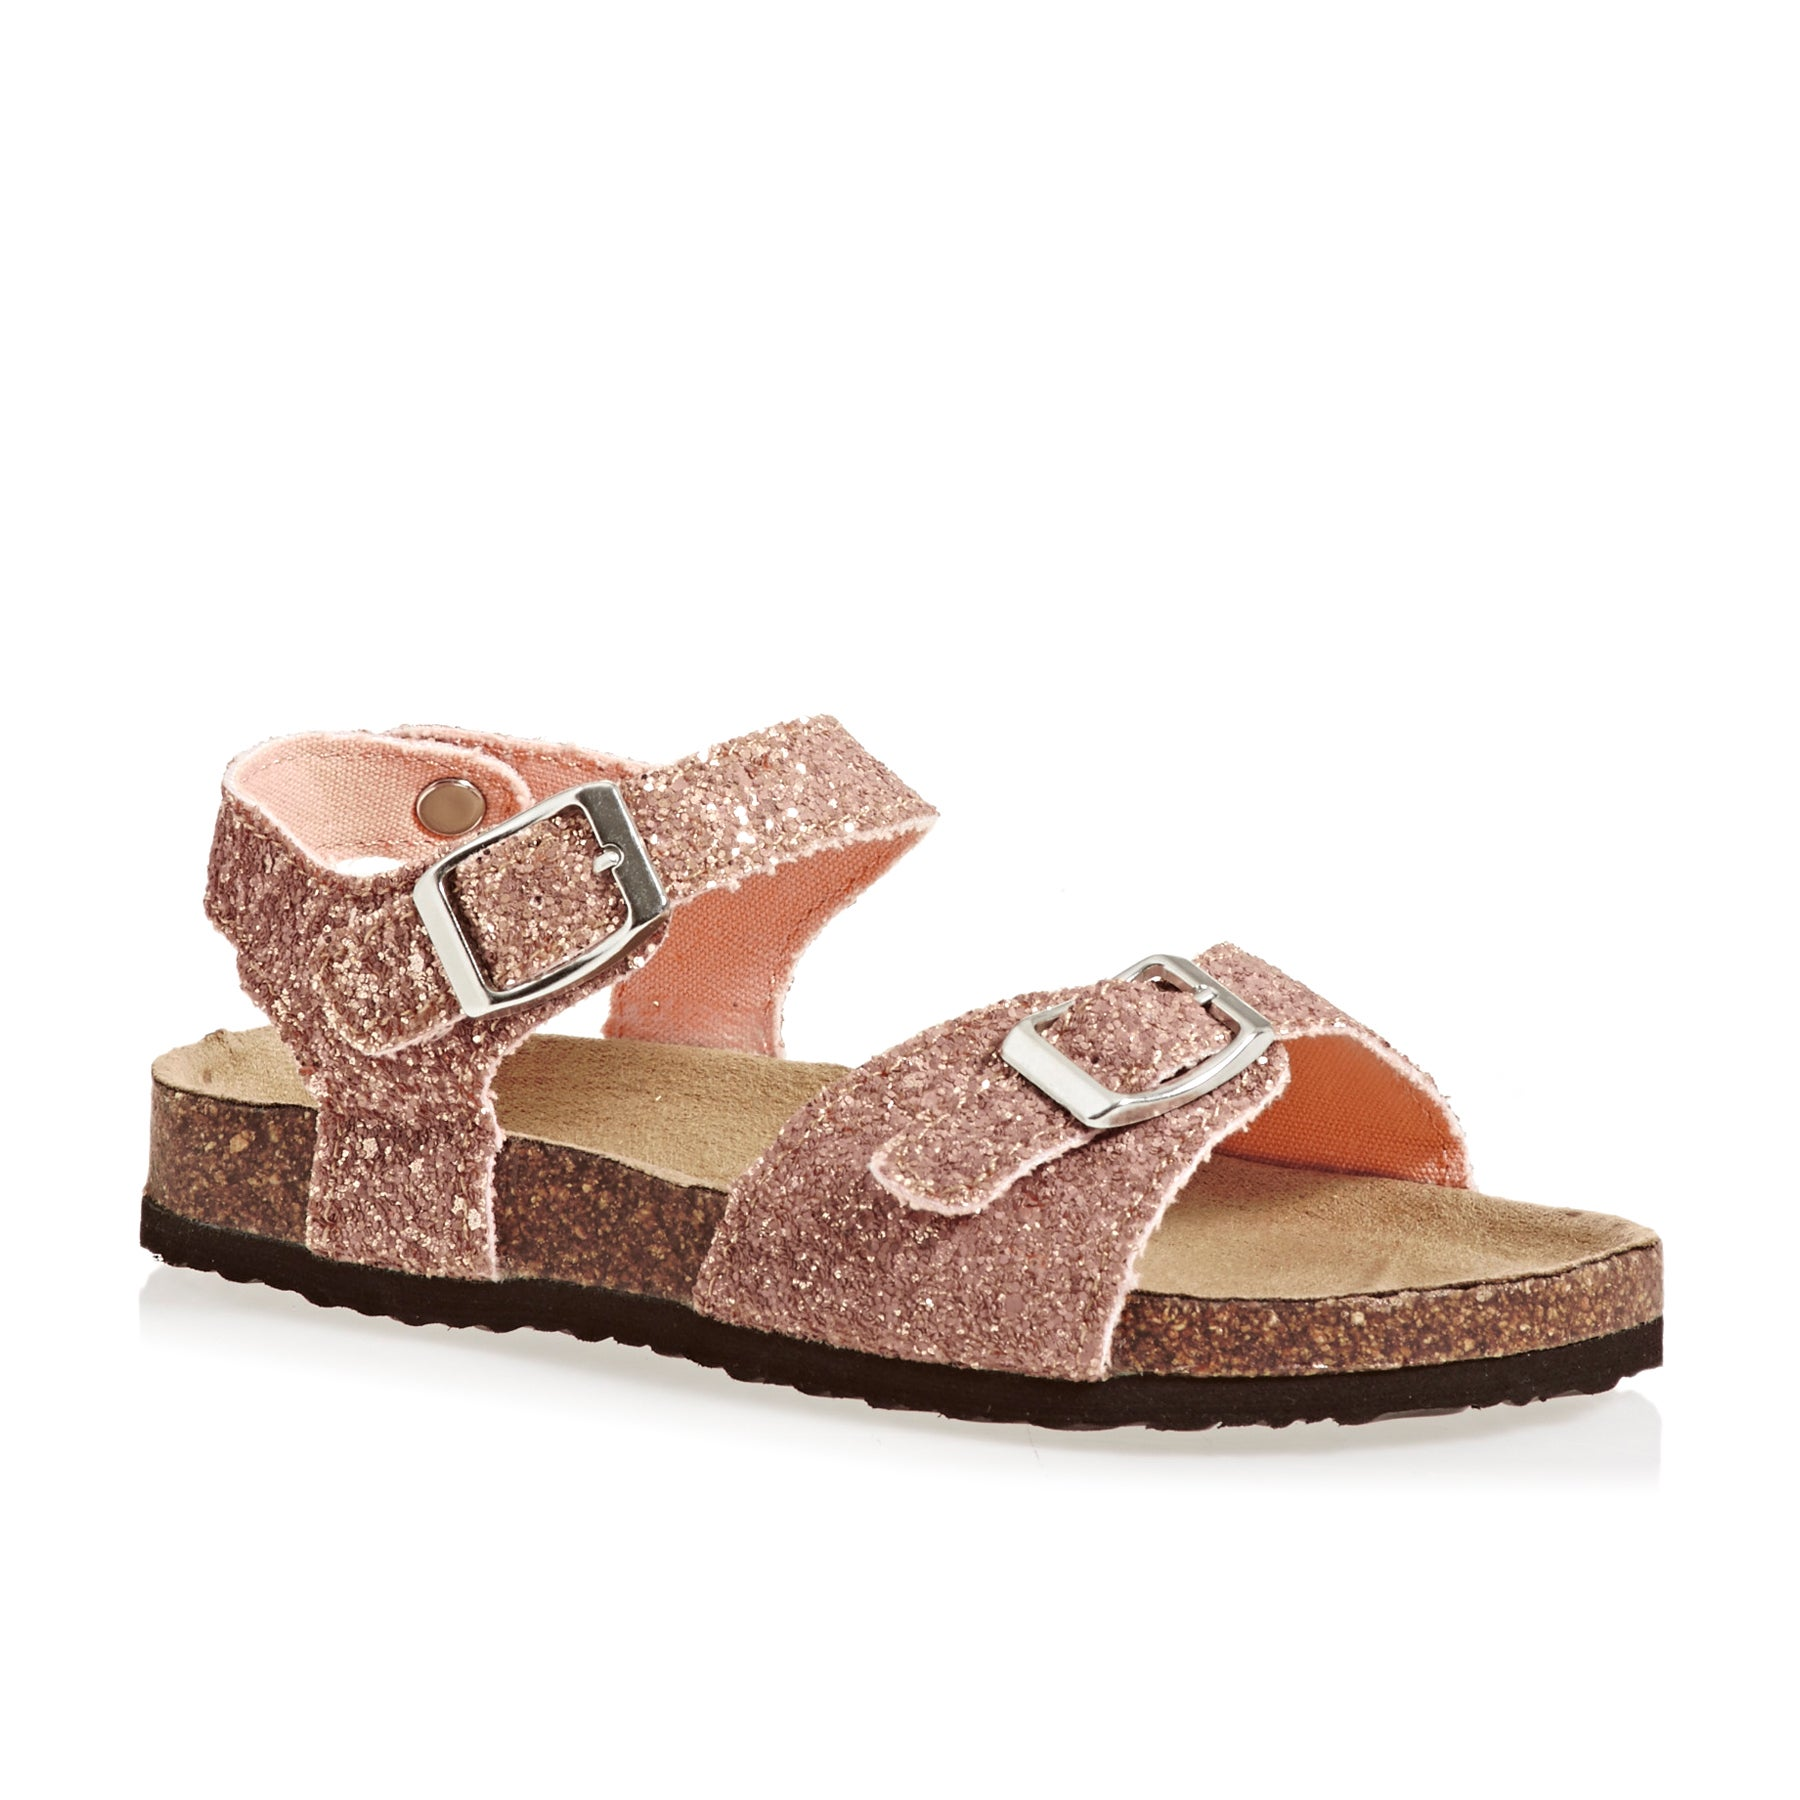 Joules Tippytoes Sandals - Gold Glitter